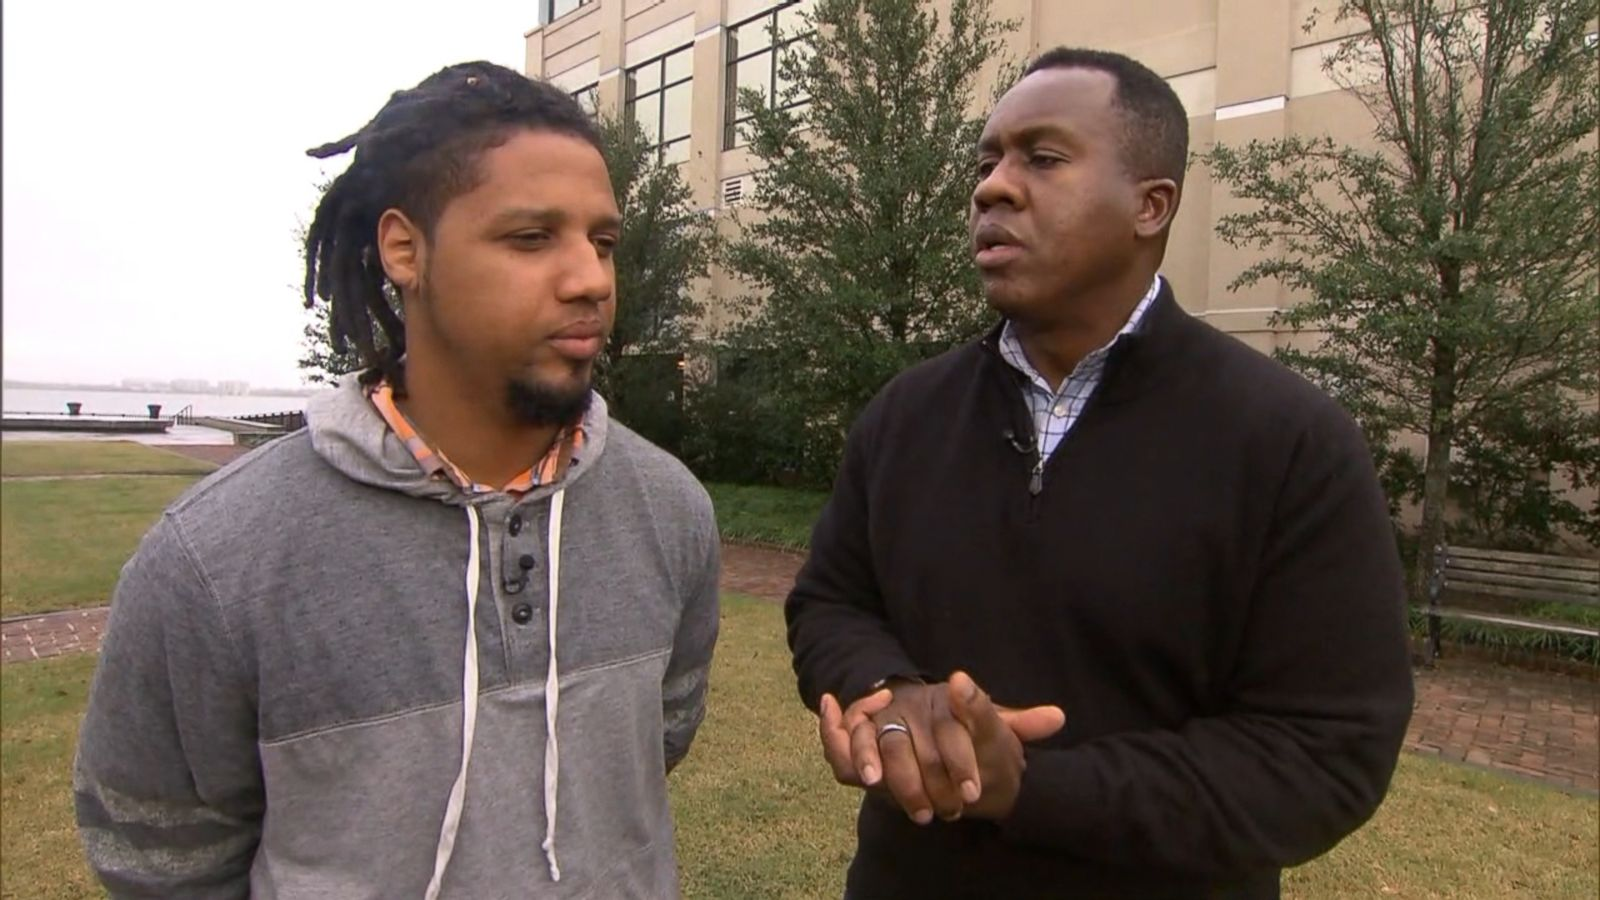 VIDEO: Feidin Santana used his cell phone to record the fatal shooting of Walter Scott.